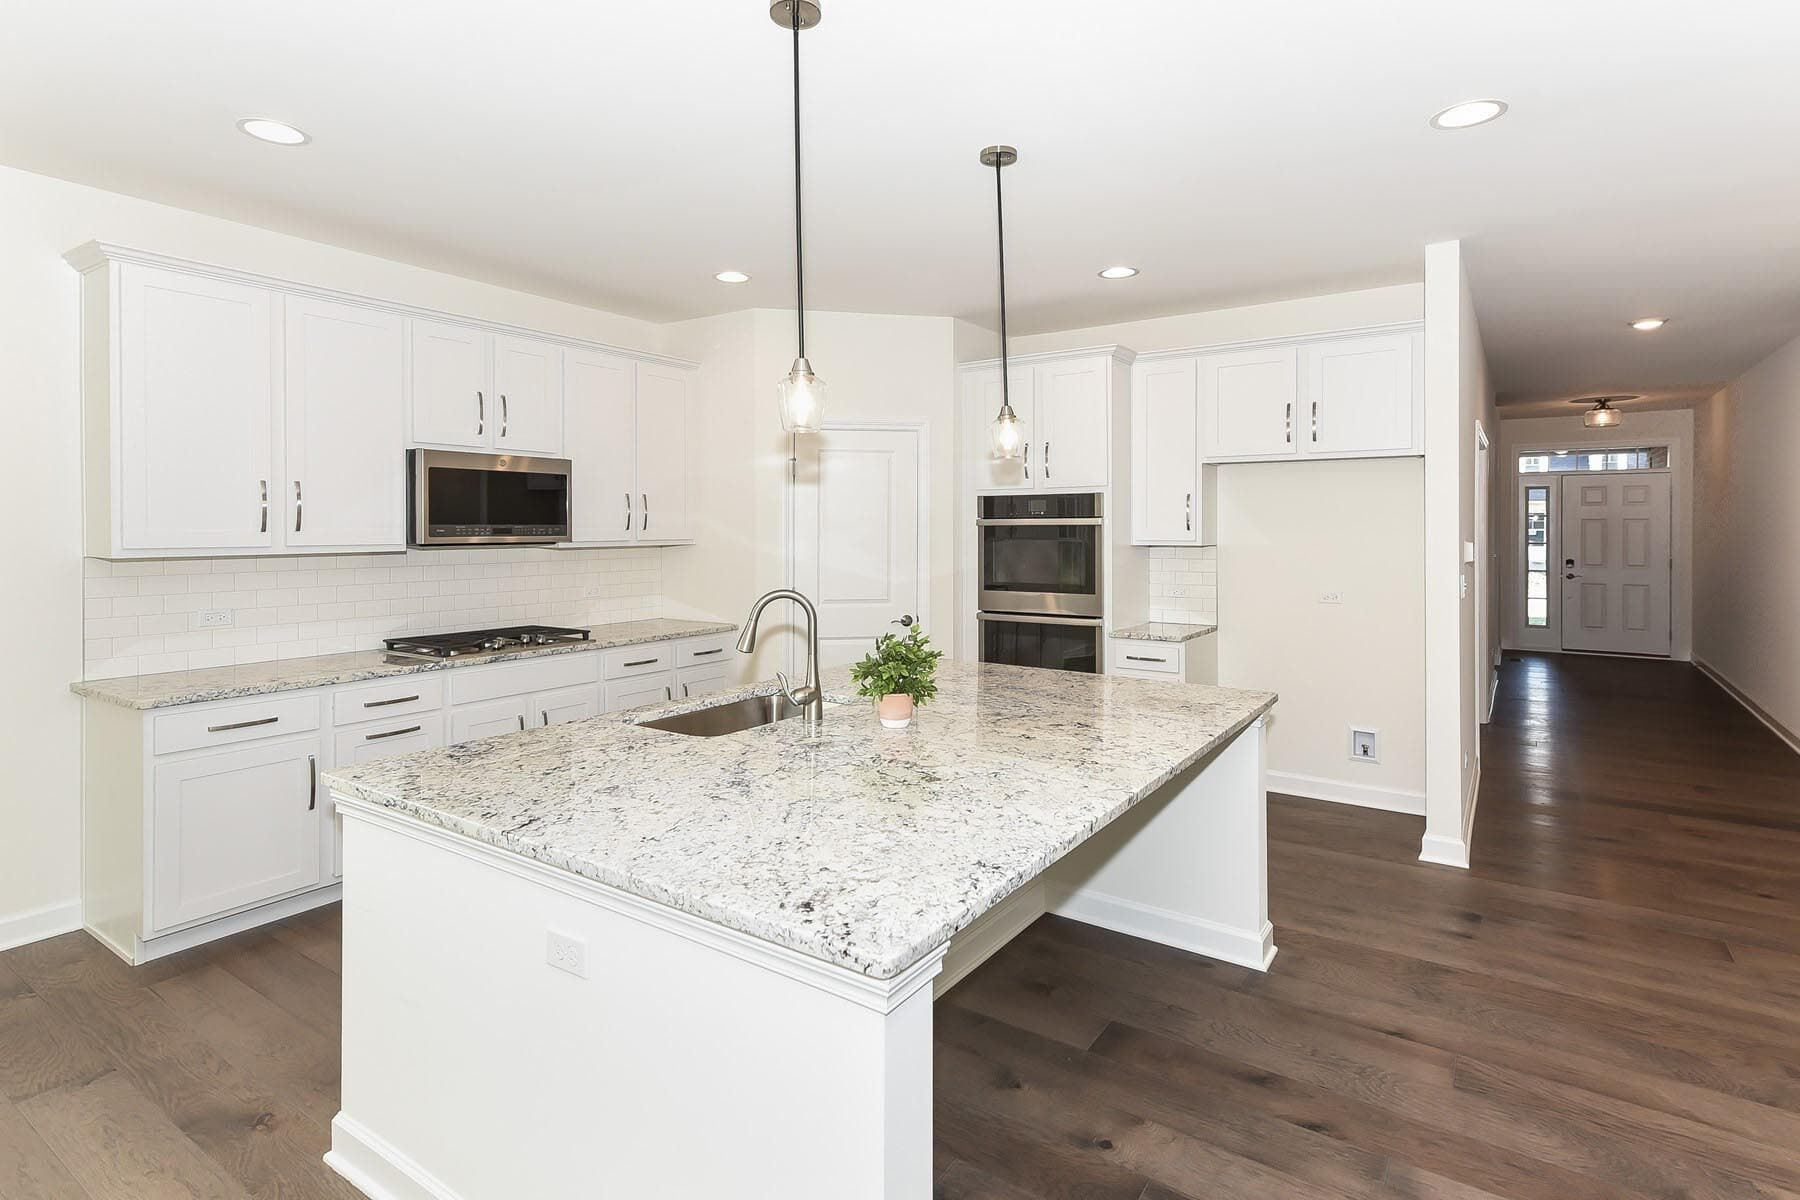 Kitchen featured in the Drexel By M/I Homes in Chicago, IL